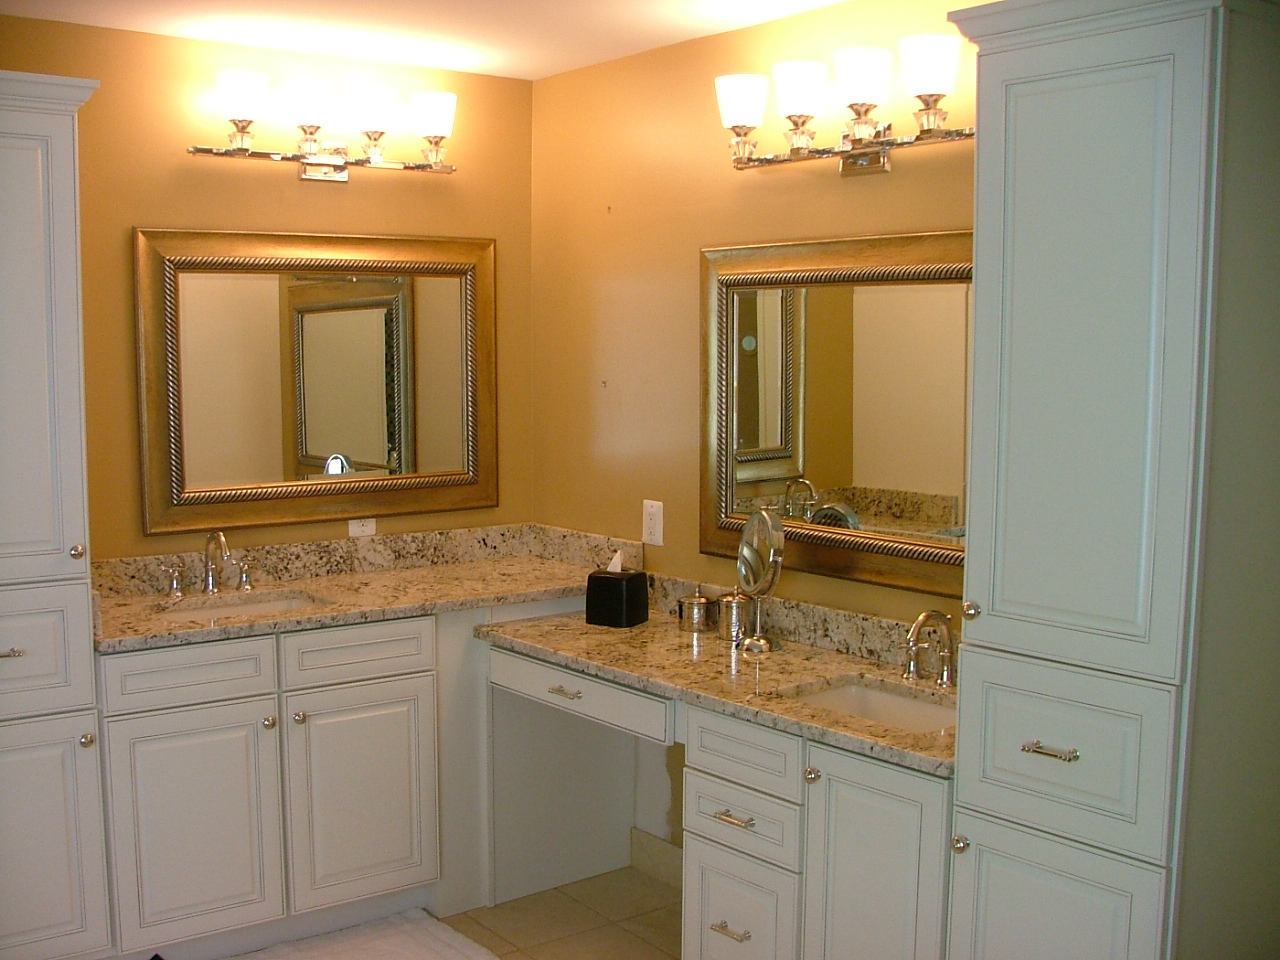 Basements woodcraft home improvements home remodeling - Bathroom remodeling montgomery county md ...